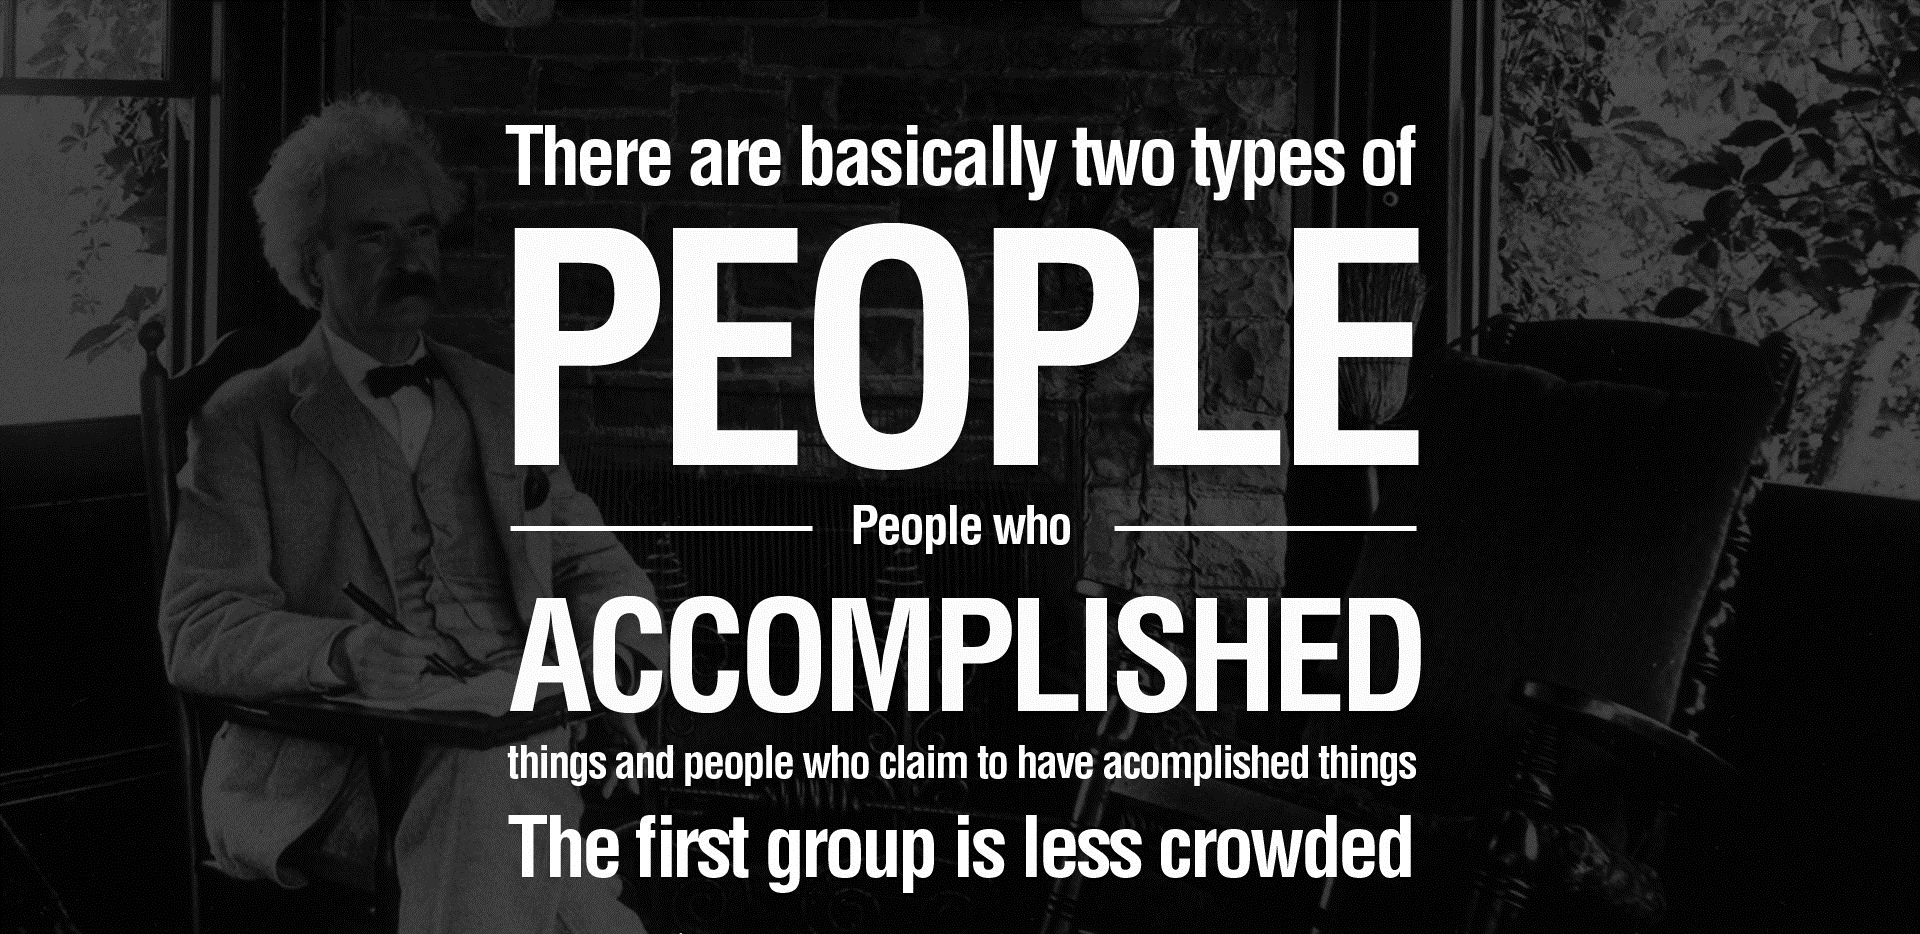 There are basically two types of people. People who accomplished things and people who claim to have accomplished things. The first group is less crowded.